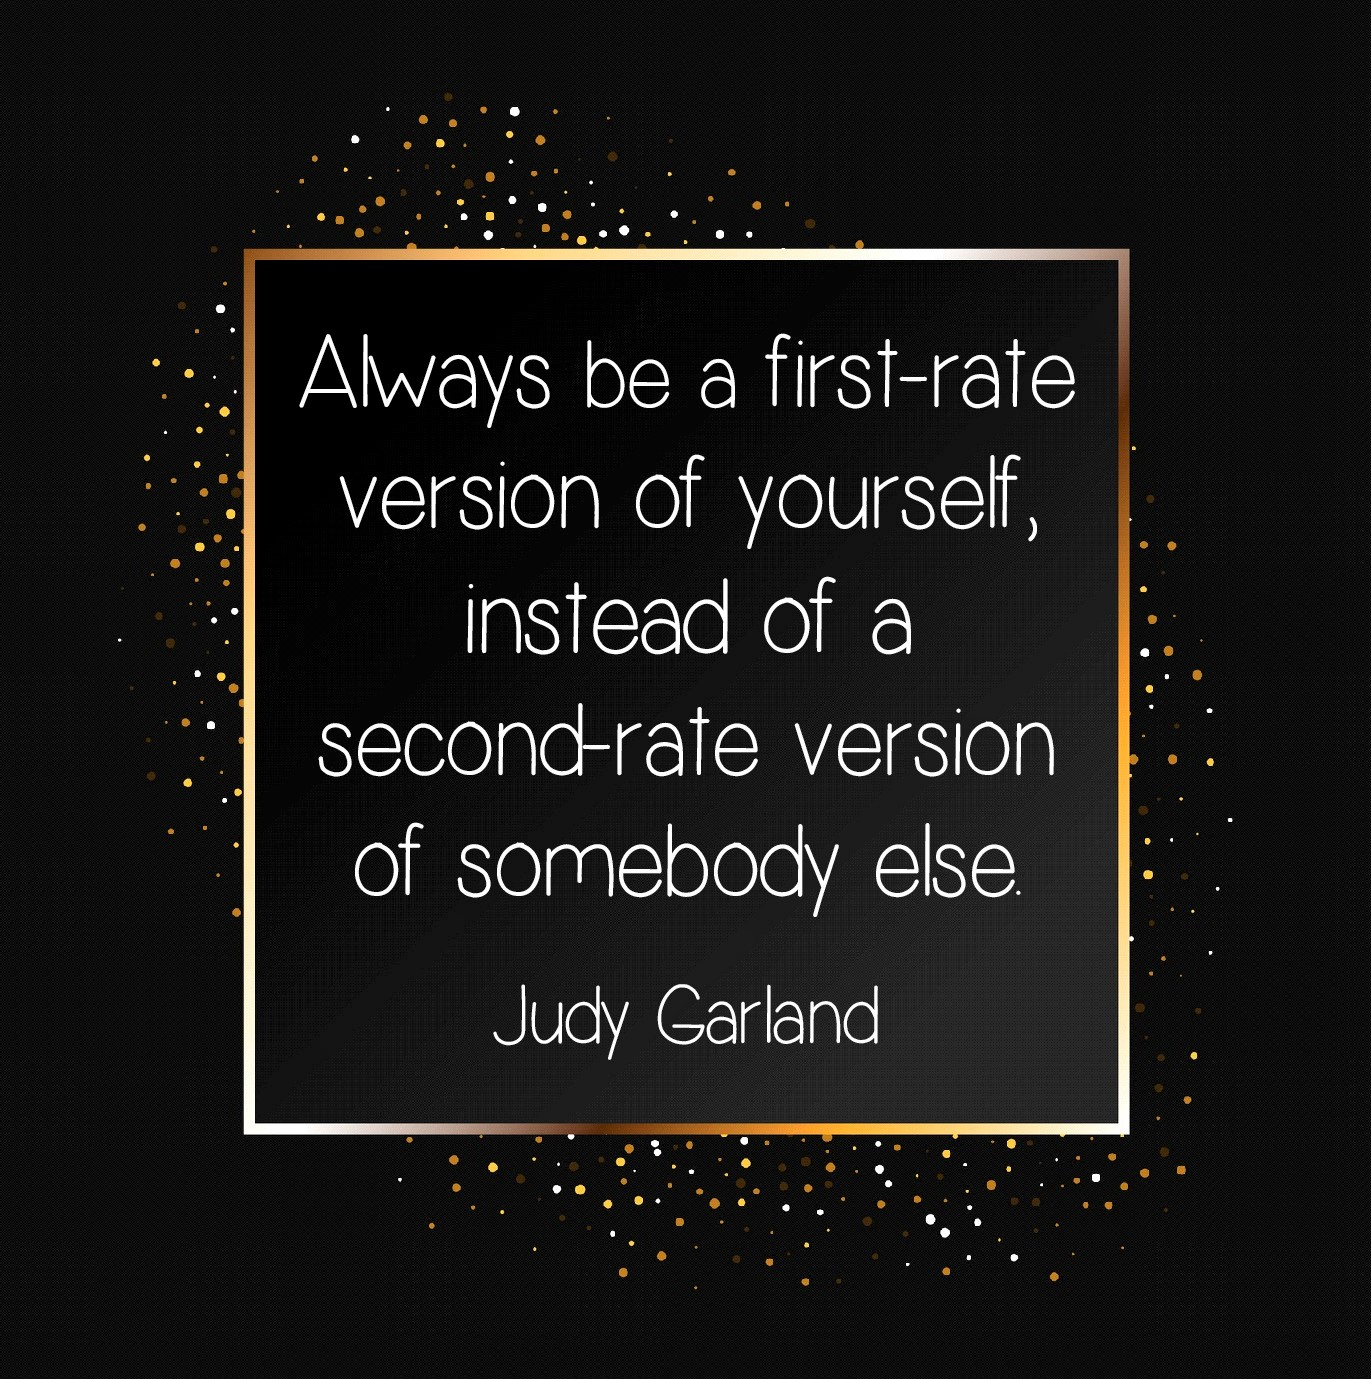 Always be a first rate version of yourself quote